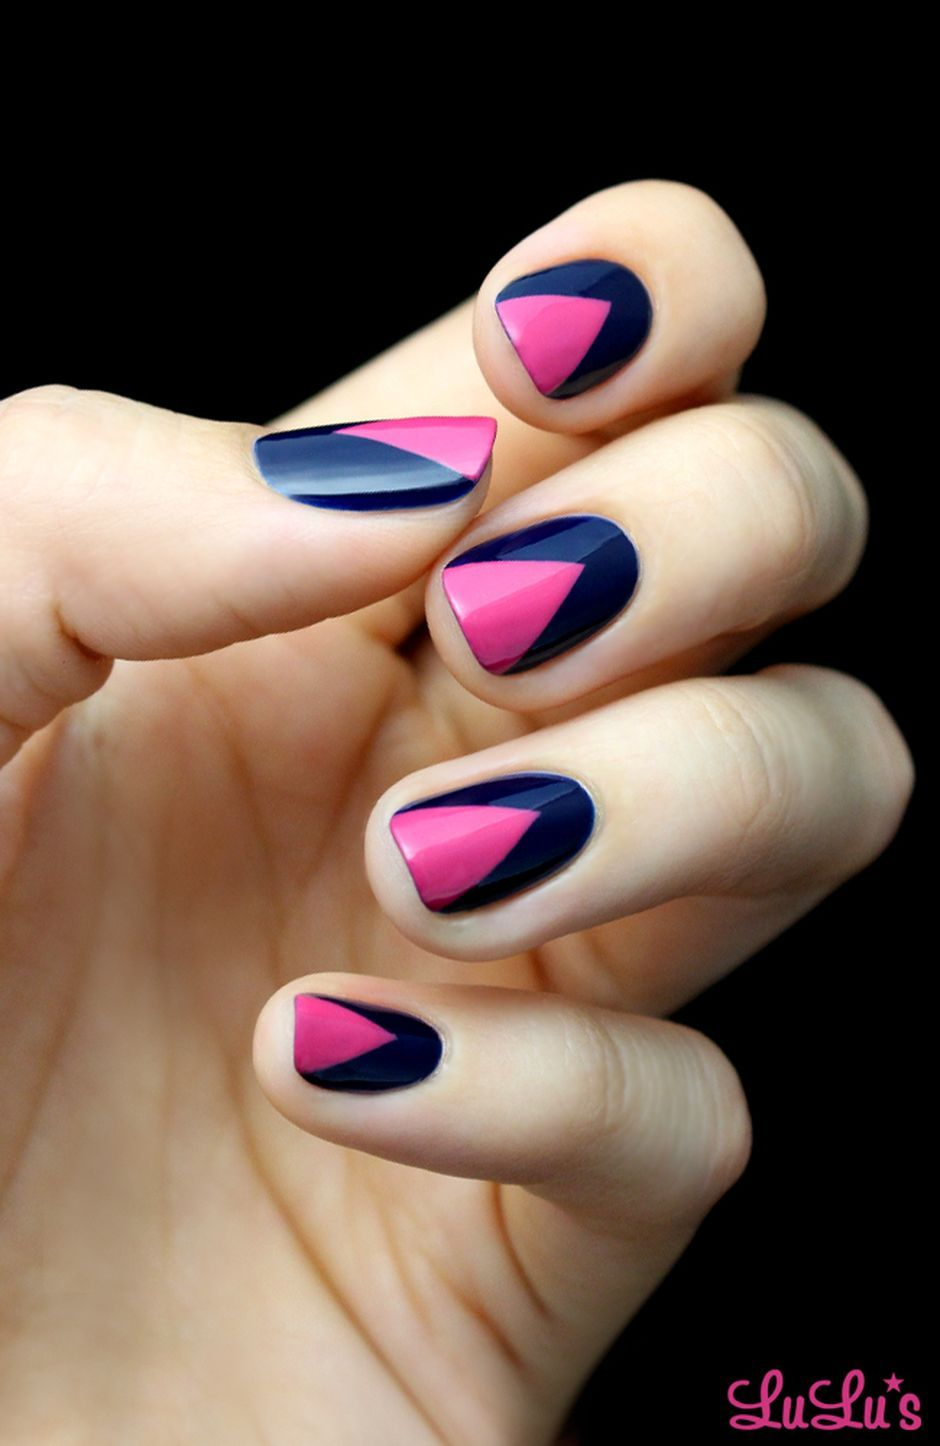 Sweet Blue Nails Ideas that Make Cool and Calm Appearance 64